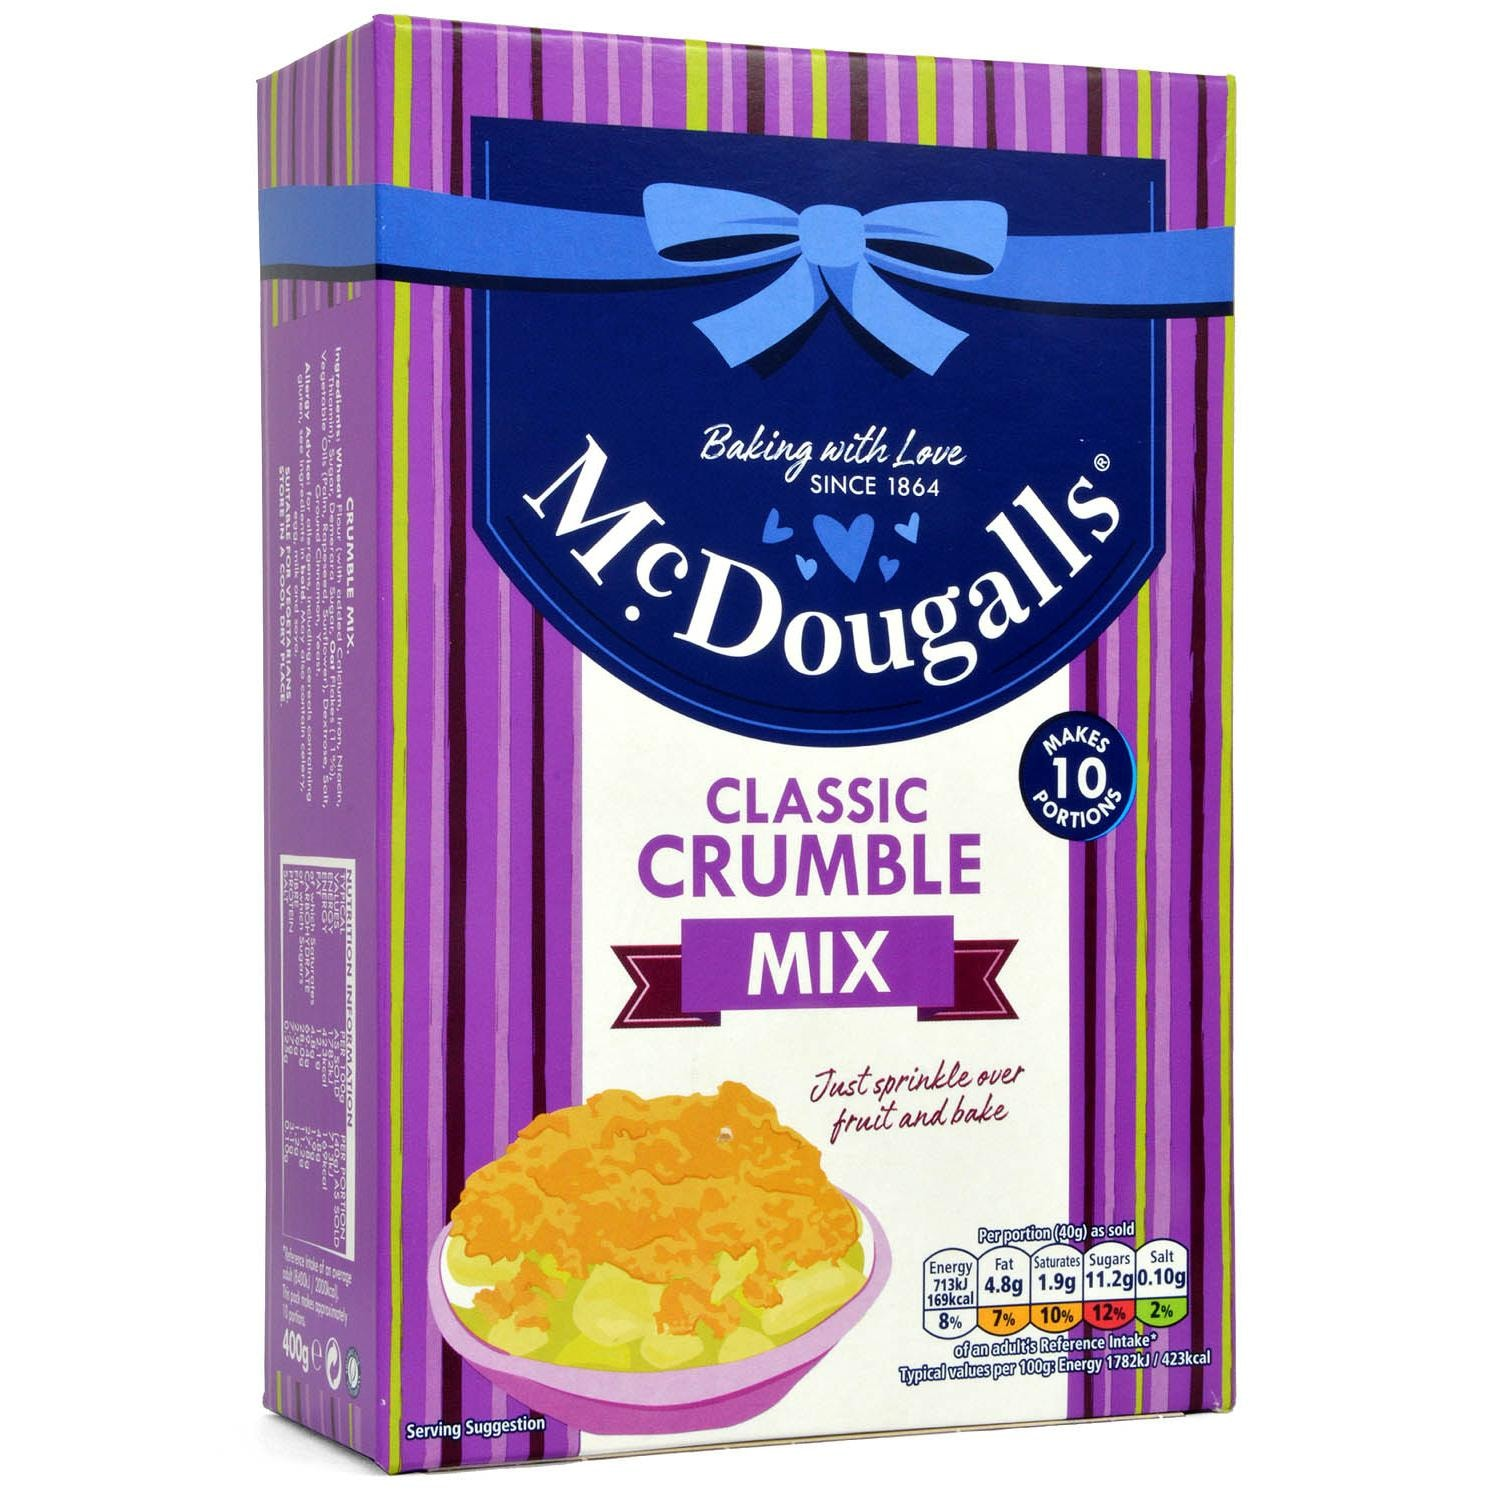 McDougalls Crumble Topping Mix - Streusel-Backmischung